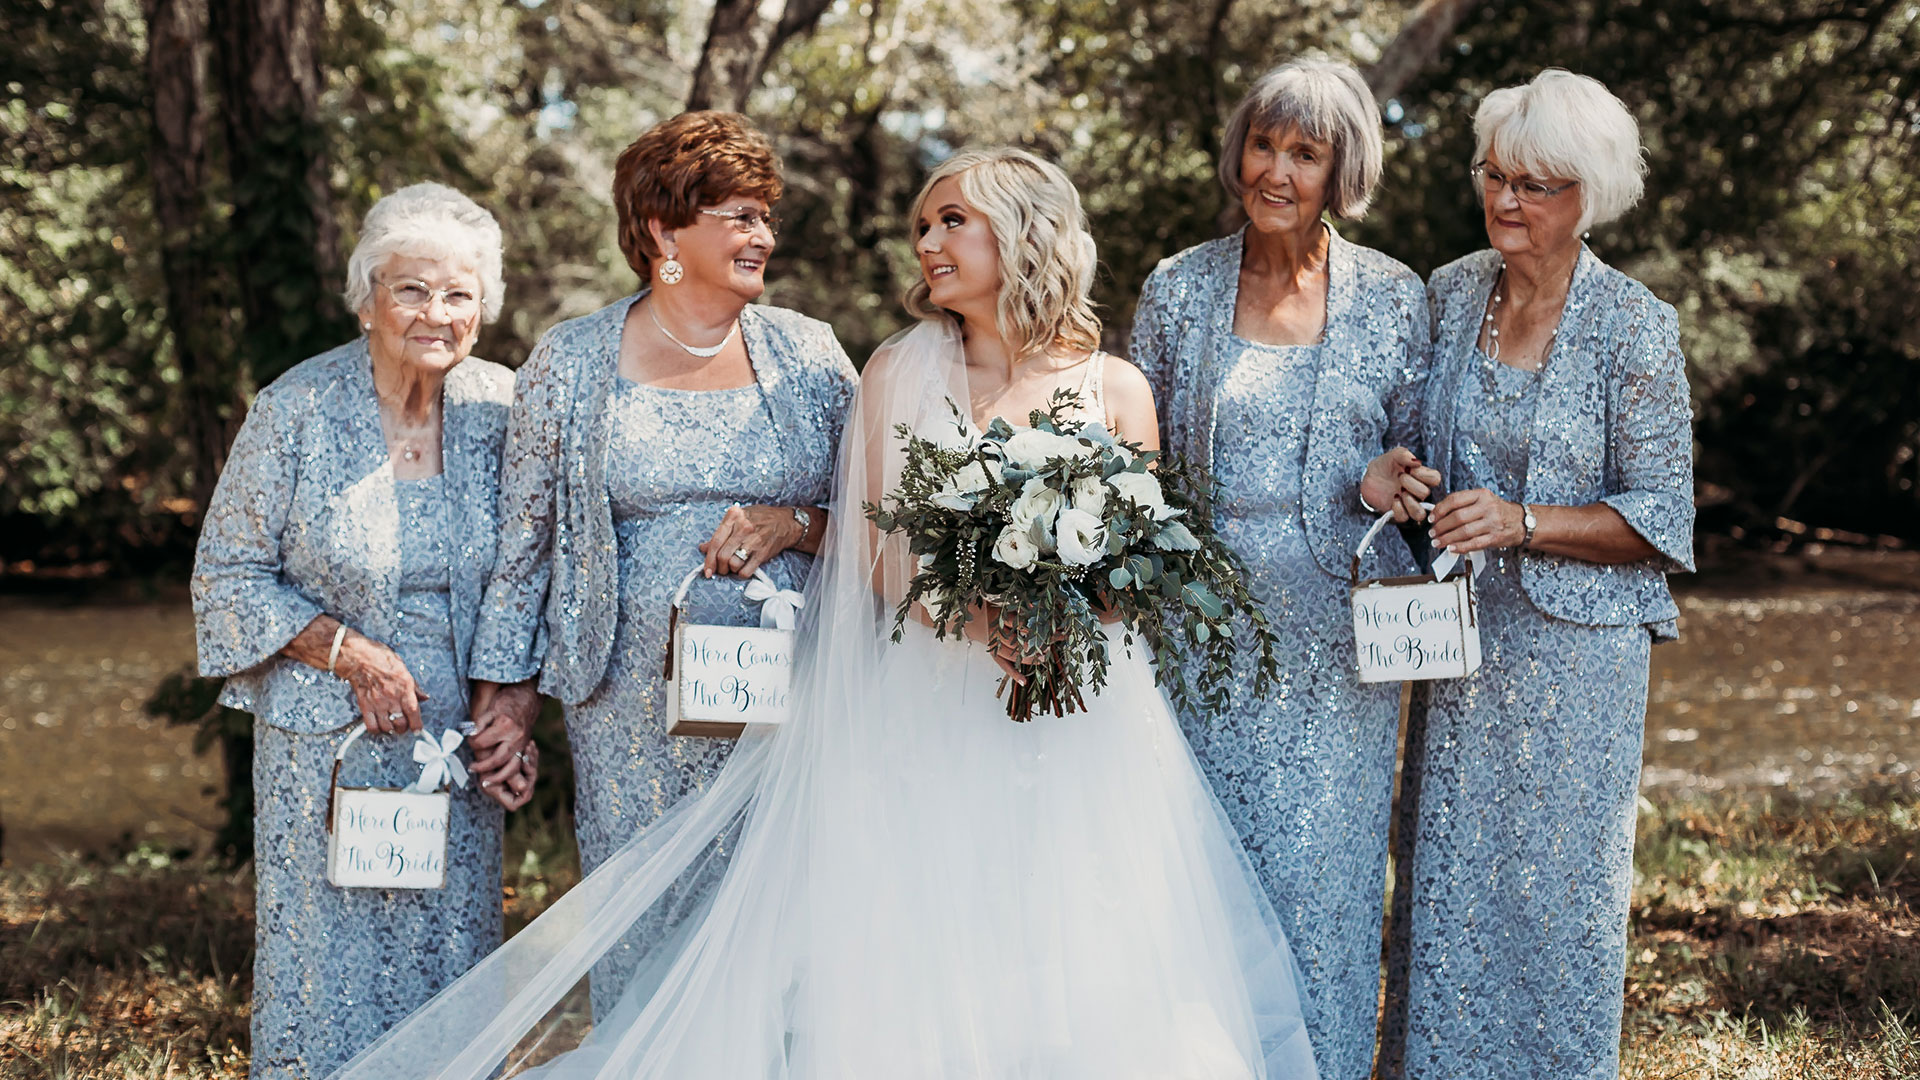 WATCH: This Tennessee Bride's 4 Grandmothers Served as Her Flower Girls